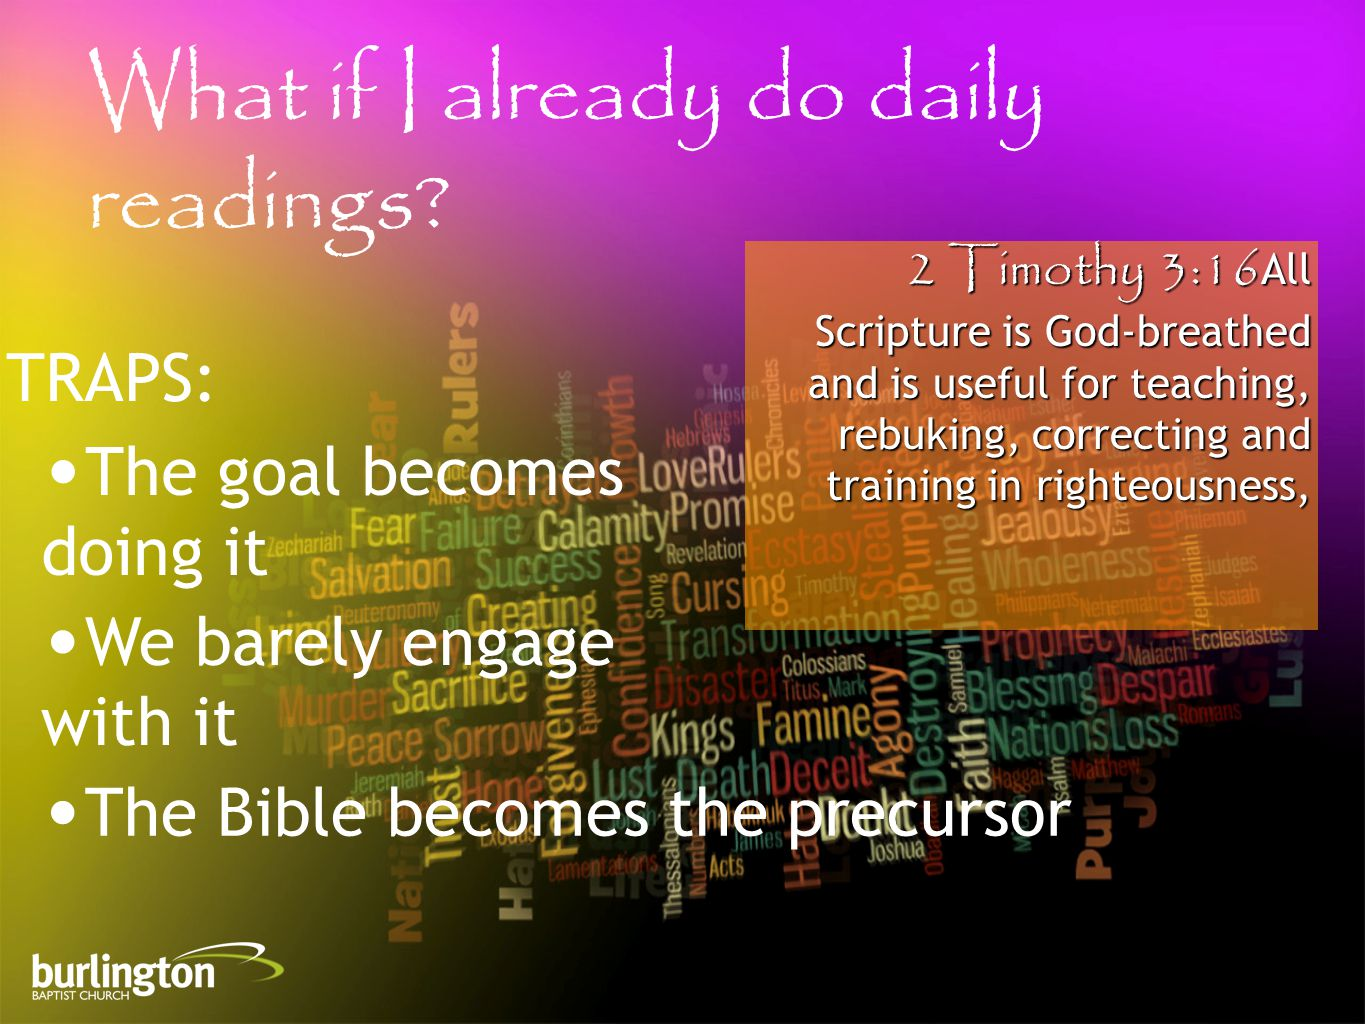 2 Timothy 3:16All Scripture is God-breathed and is useful for teaching, rebuking, correcting and training in righteousness, What if I already do daily